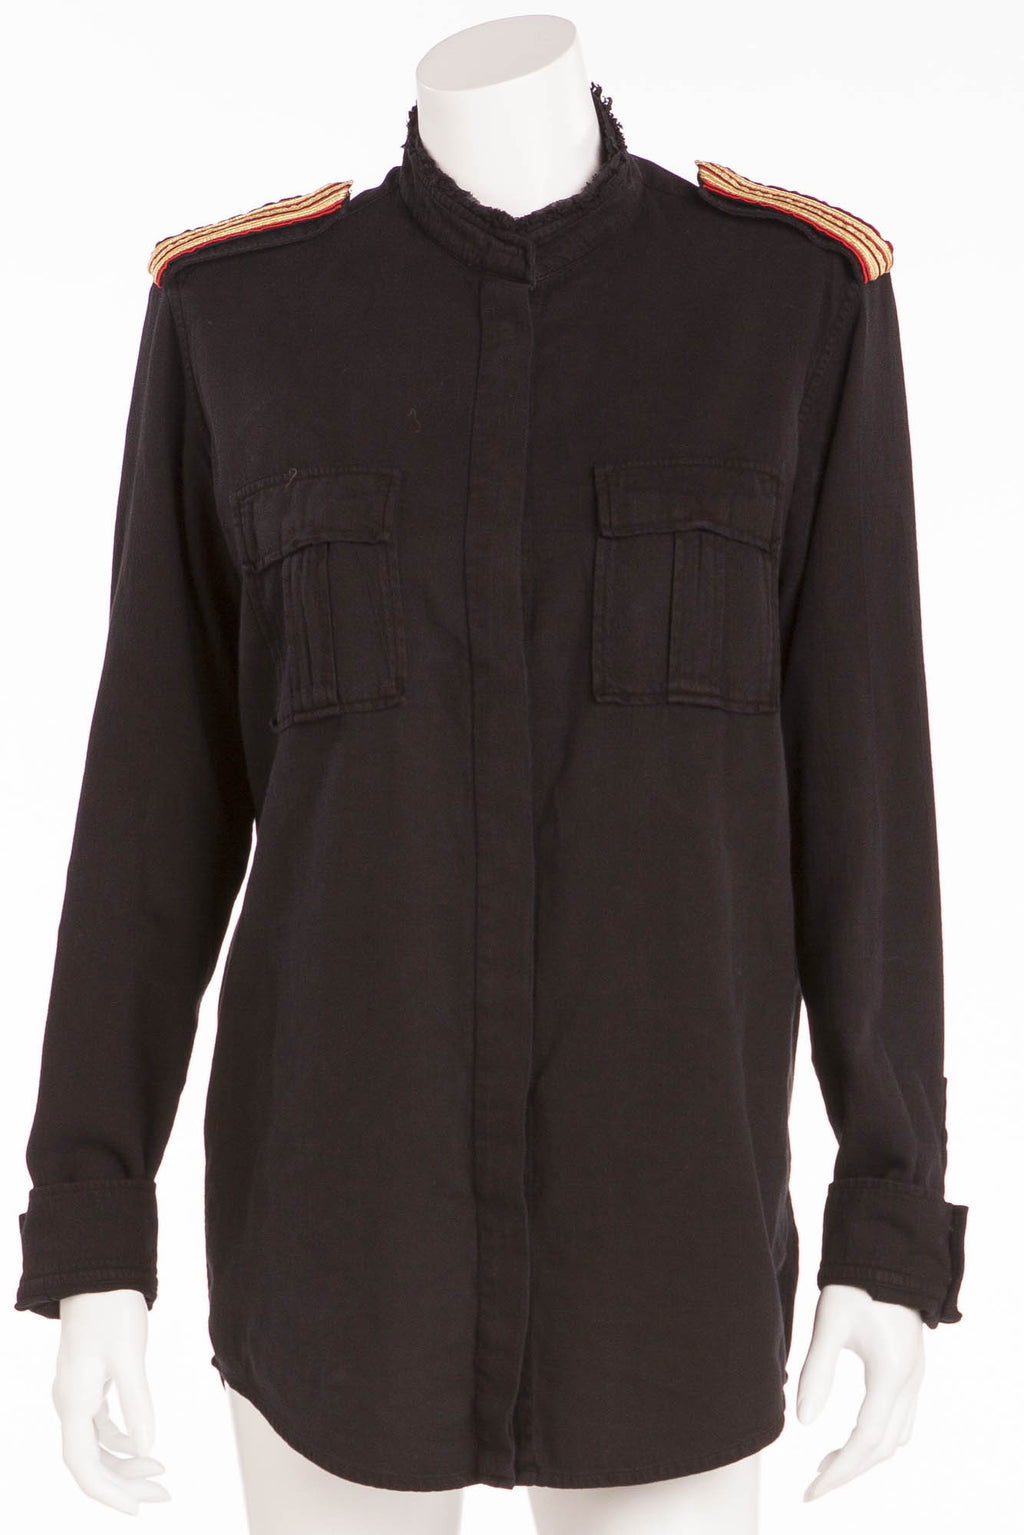 Balmain - Black Button Down Red and Gold Trimmed Shoulders - FR 40